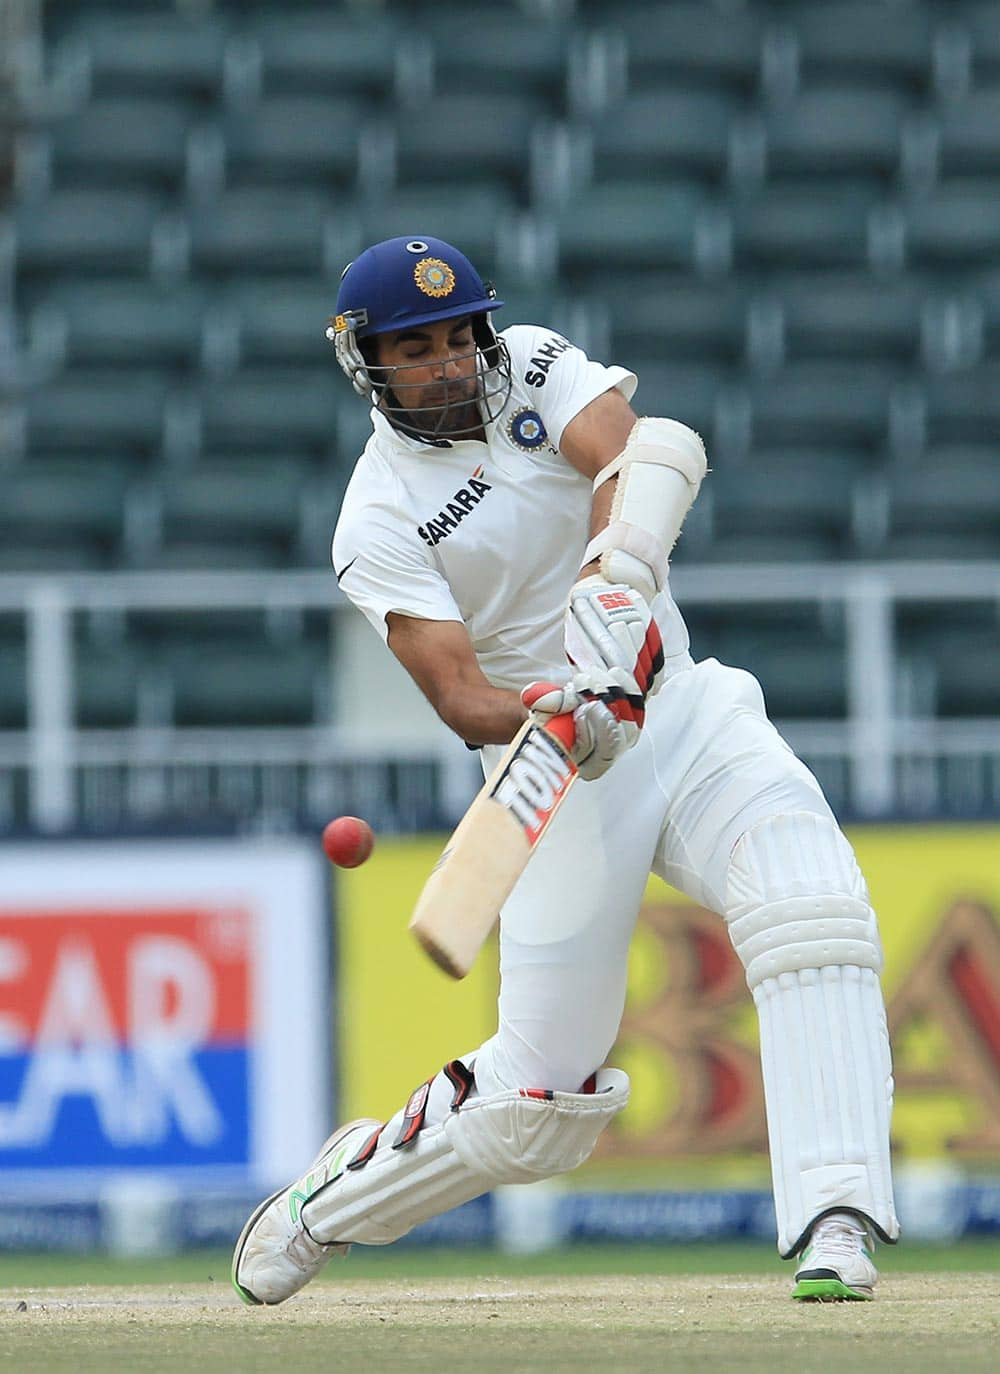 Zaheer Khan plays a shot during their 2nd innings on the fourth day of their cricket test match against South Africa at Wanderers stadium in Johannesburg.